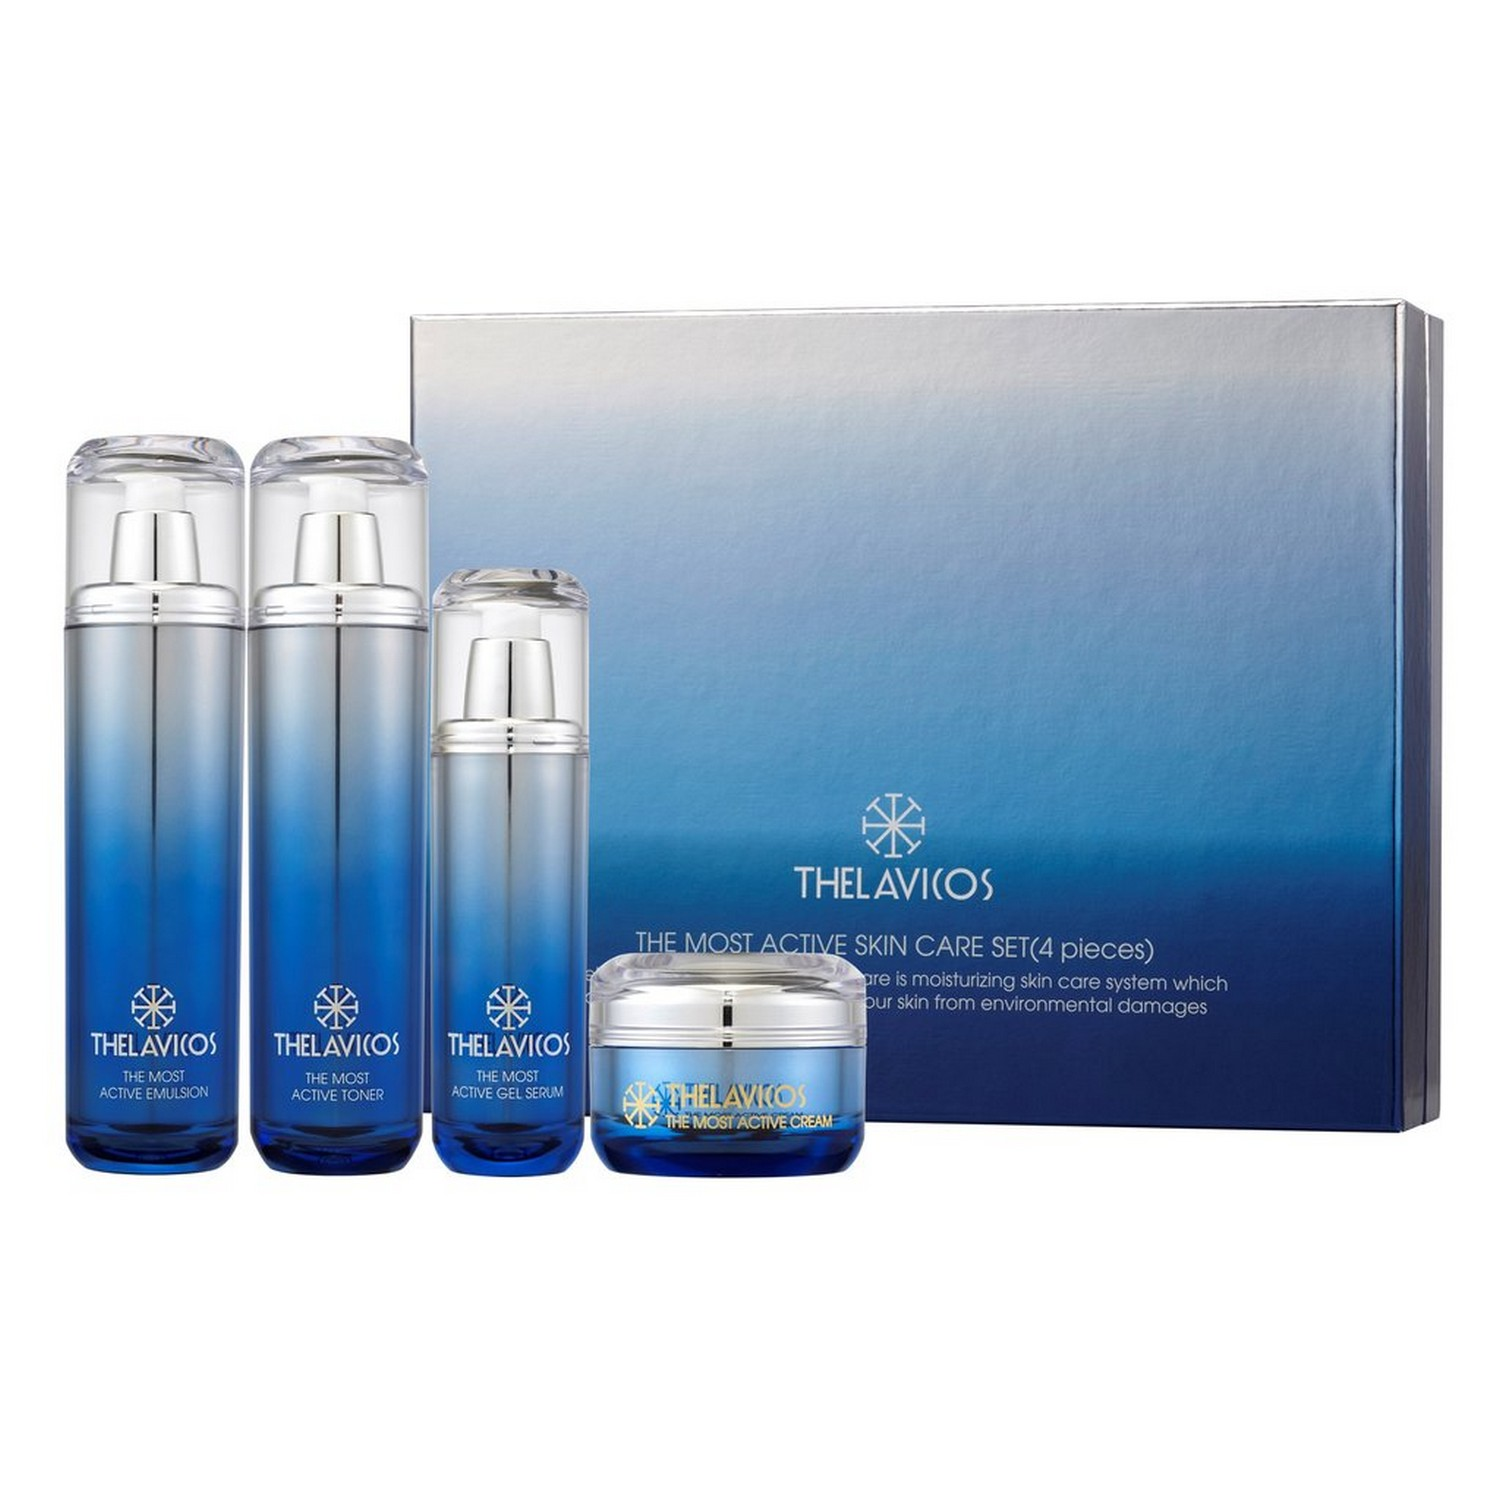 THELAVICOS THE MOST ACTIVE SKIN CARE SET (4 pieces) (set)